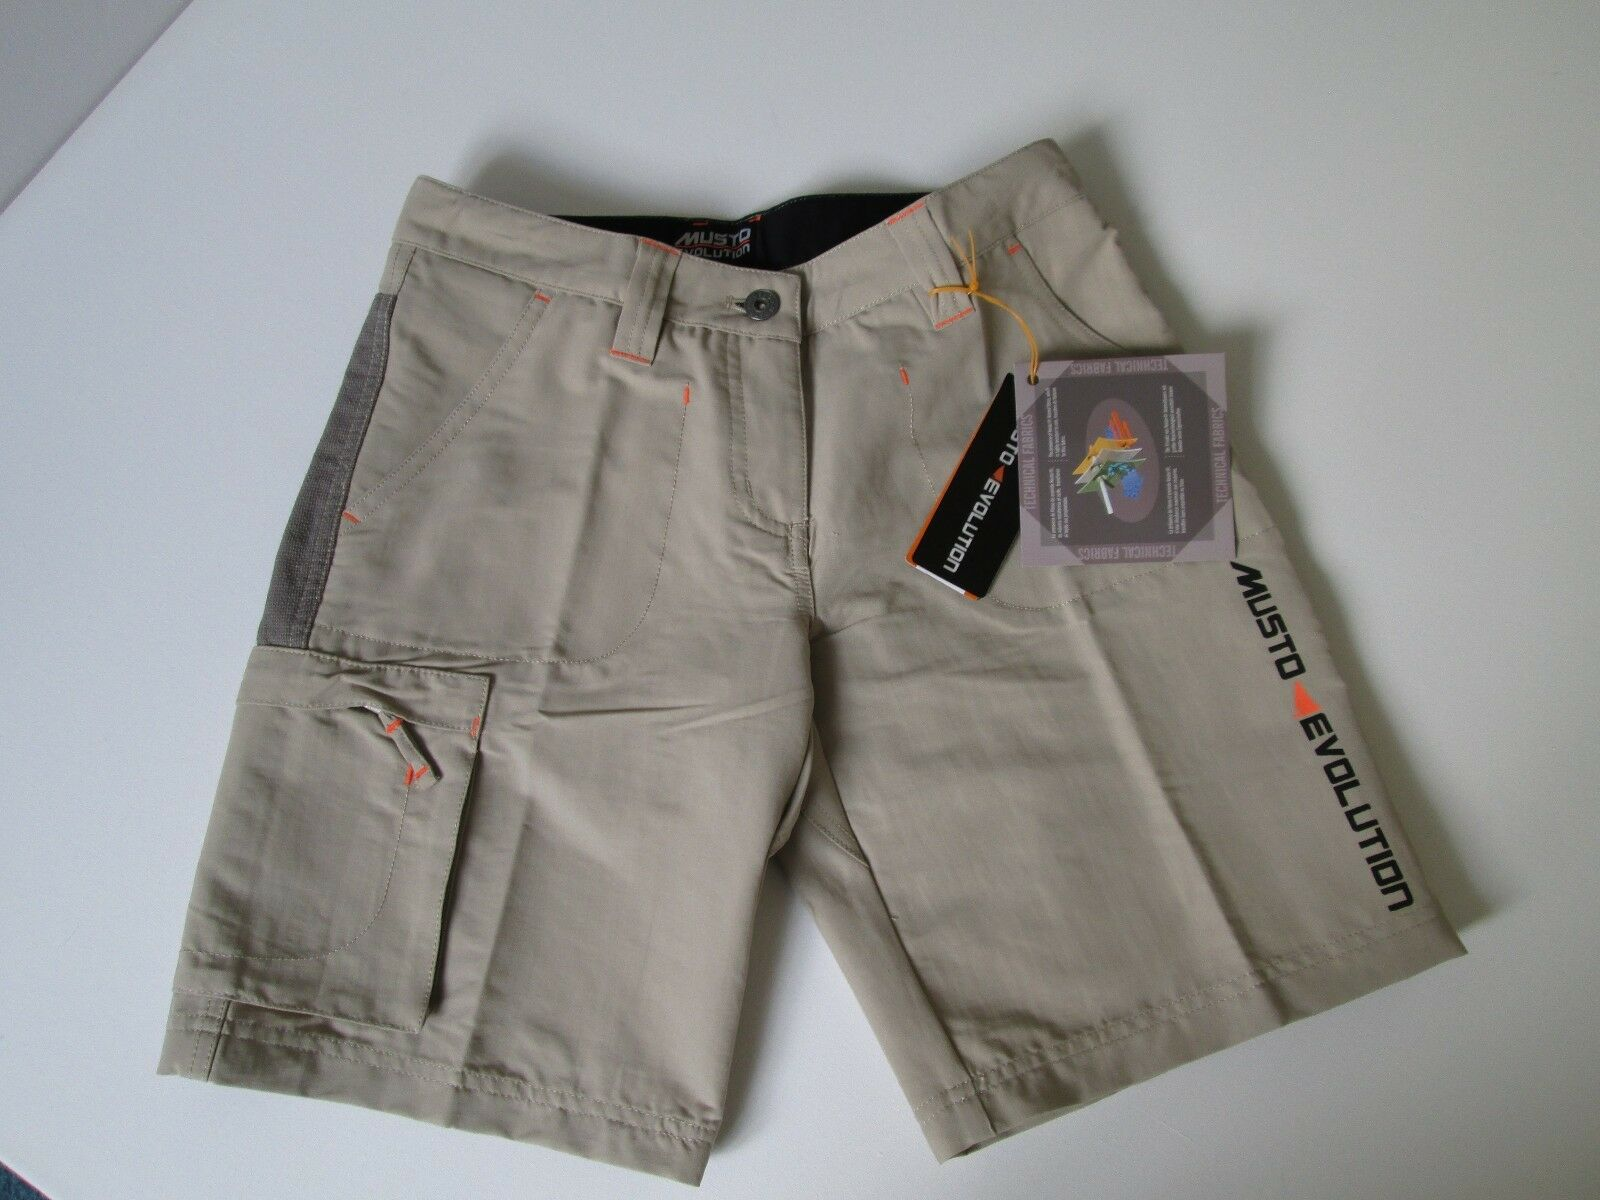 Ladies Musto Evolution Technical shorts LT0340 Light Stone 12